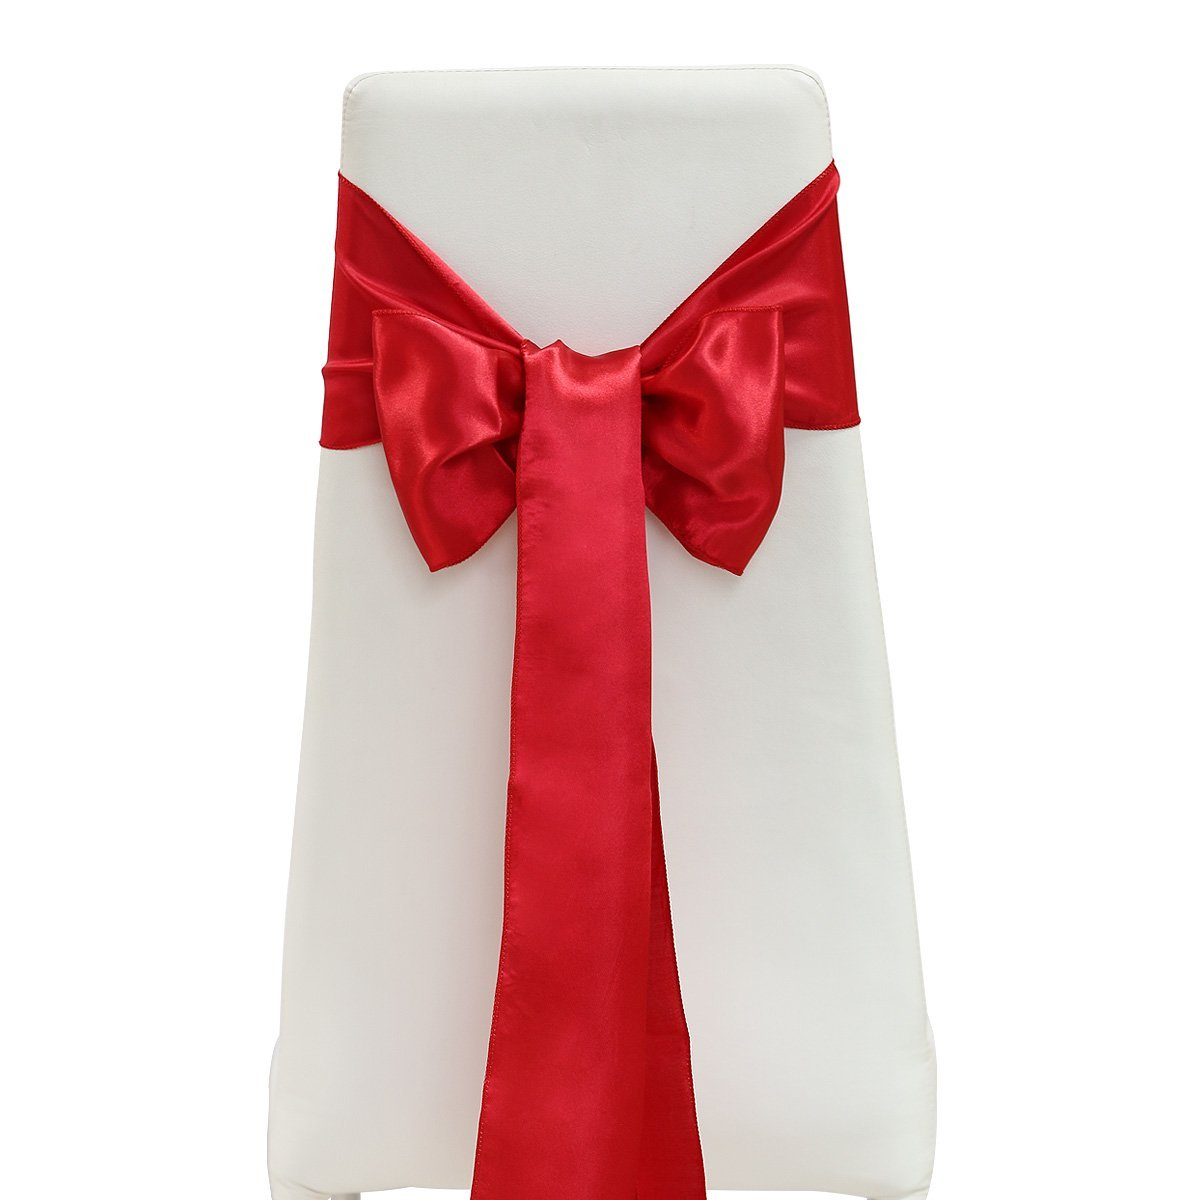 25pcs 15x275cm Elegant Soft Satin Bowknot Chair Cover Sashes Bows Ribbons for Wedding Banquet Party Decoration